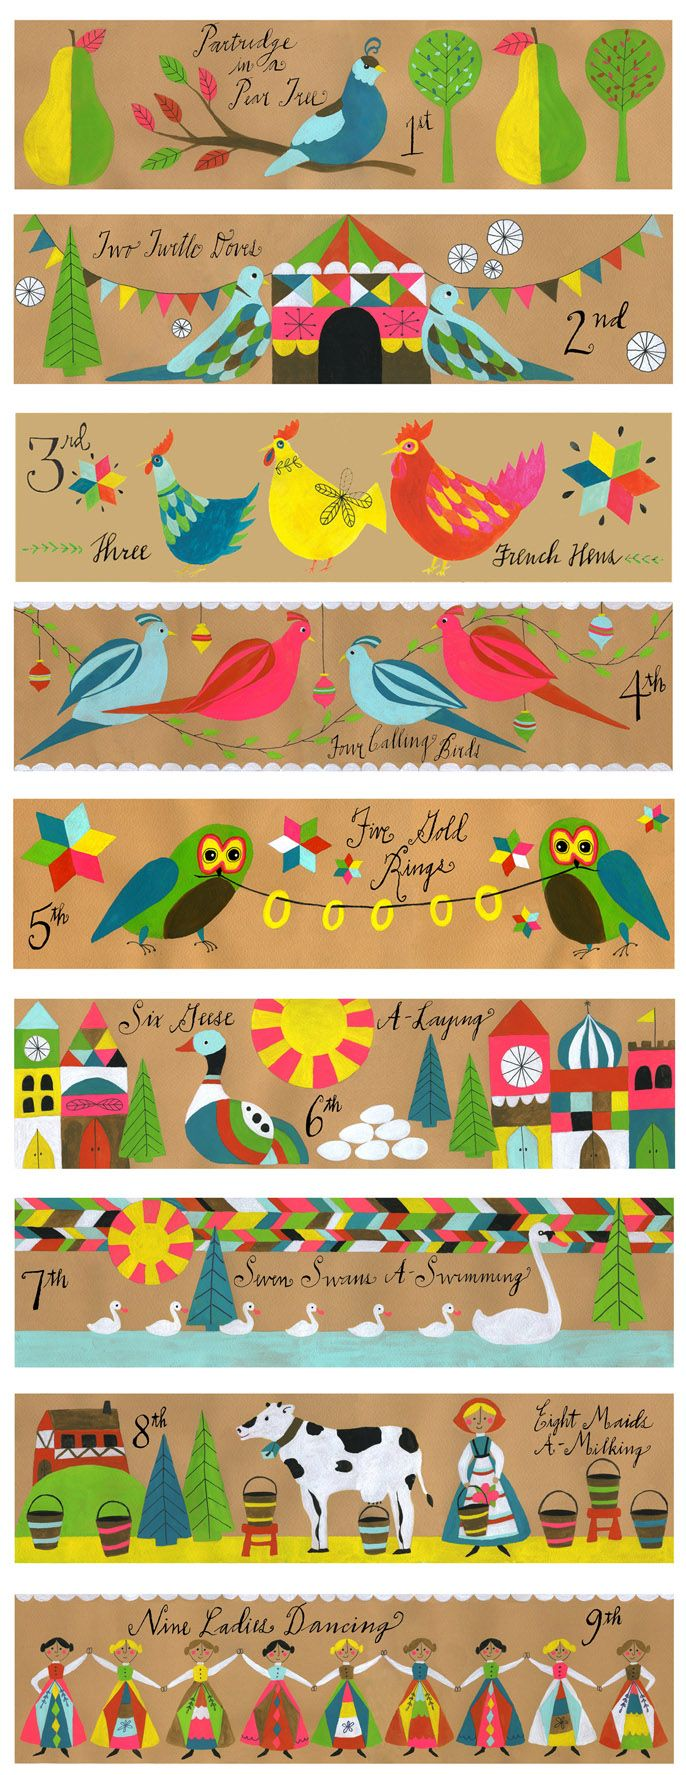 designs for 12 Days of Christmas ornaments by Lisa Congdon #illustrations